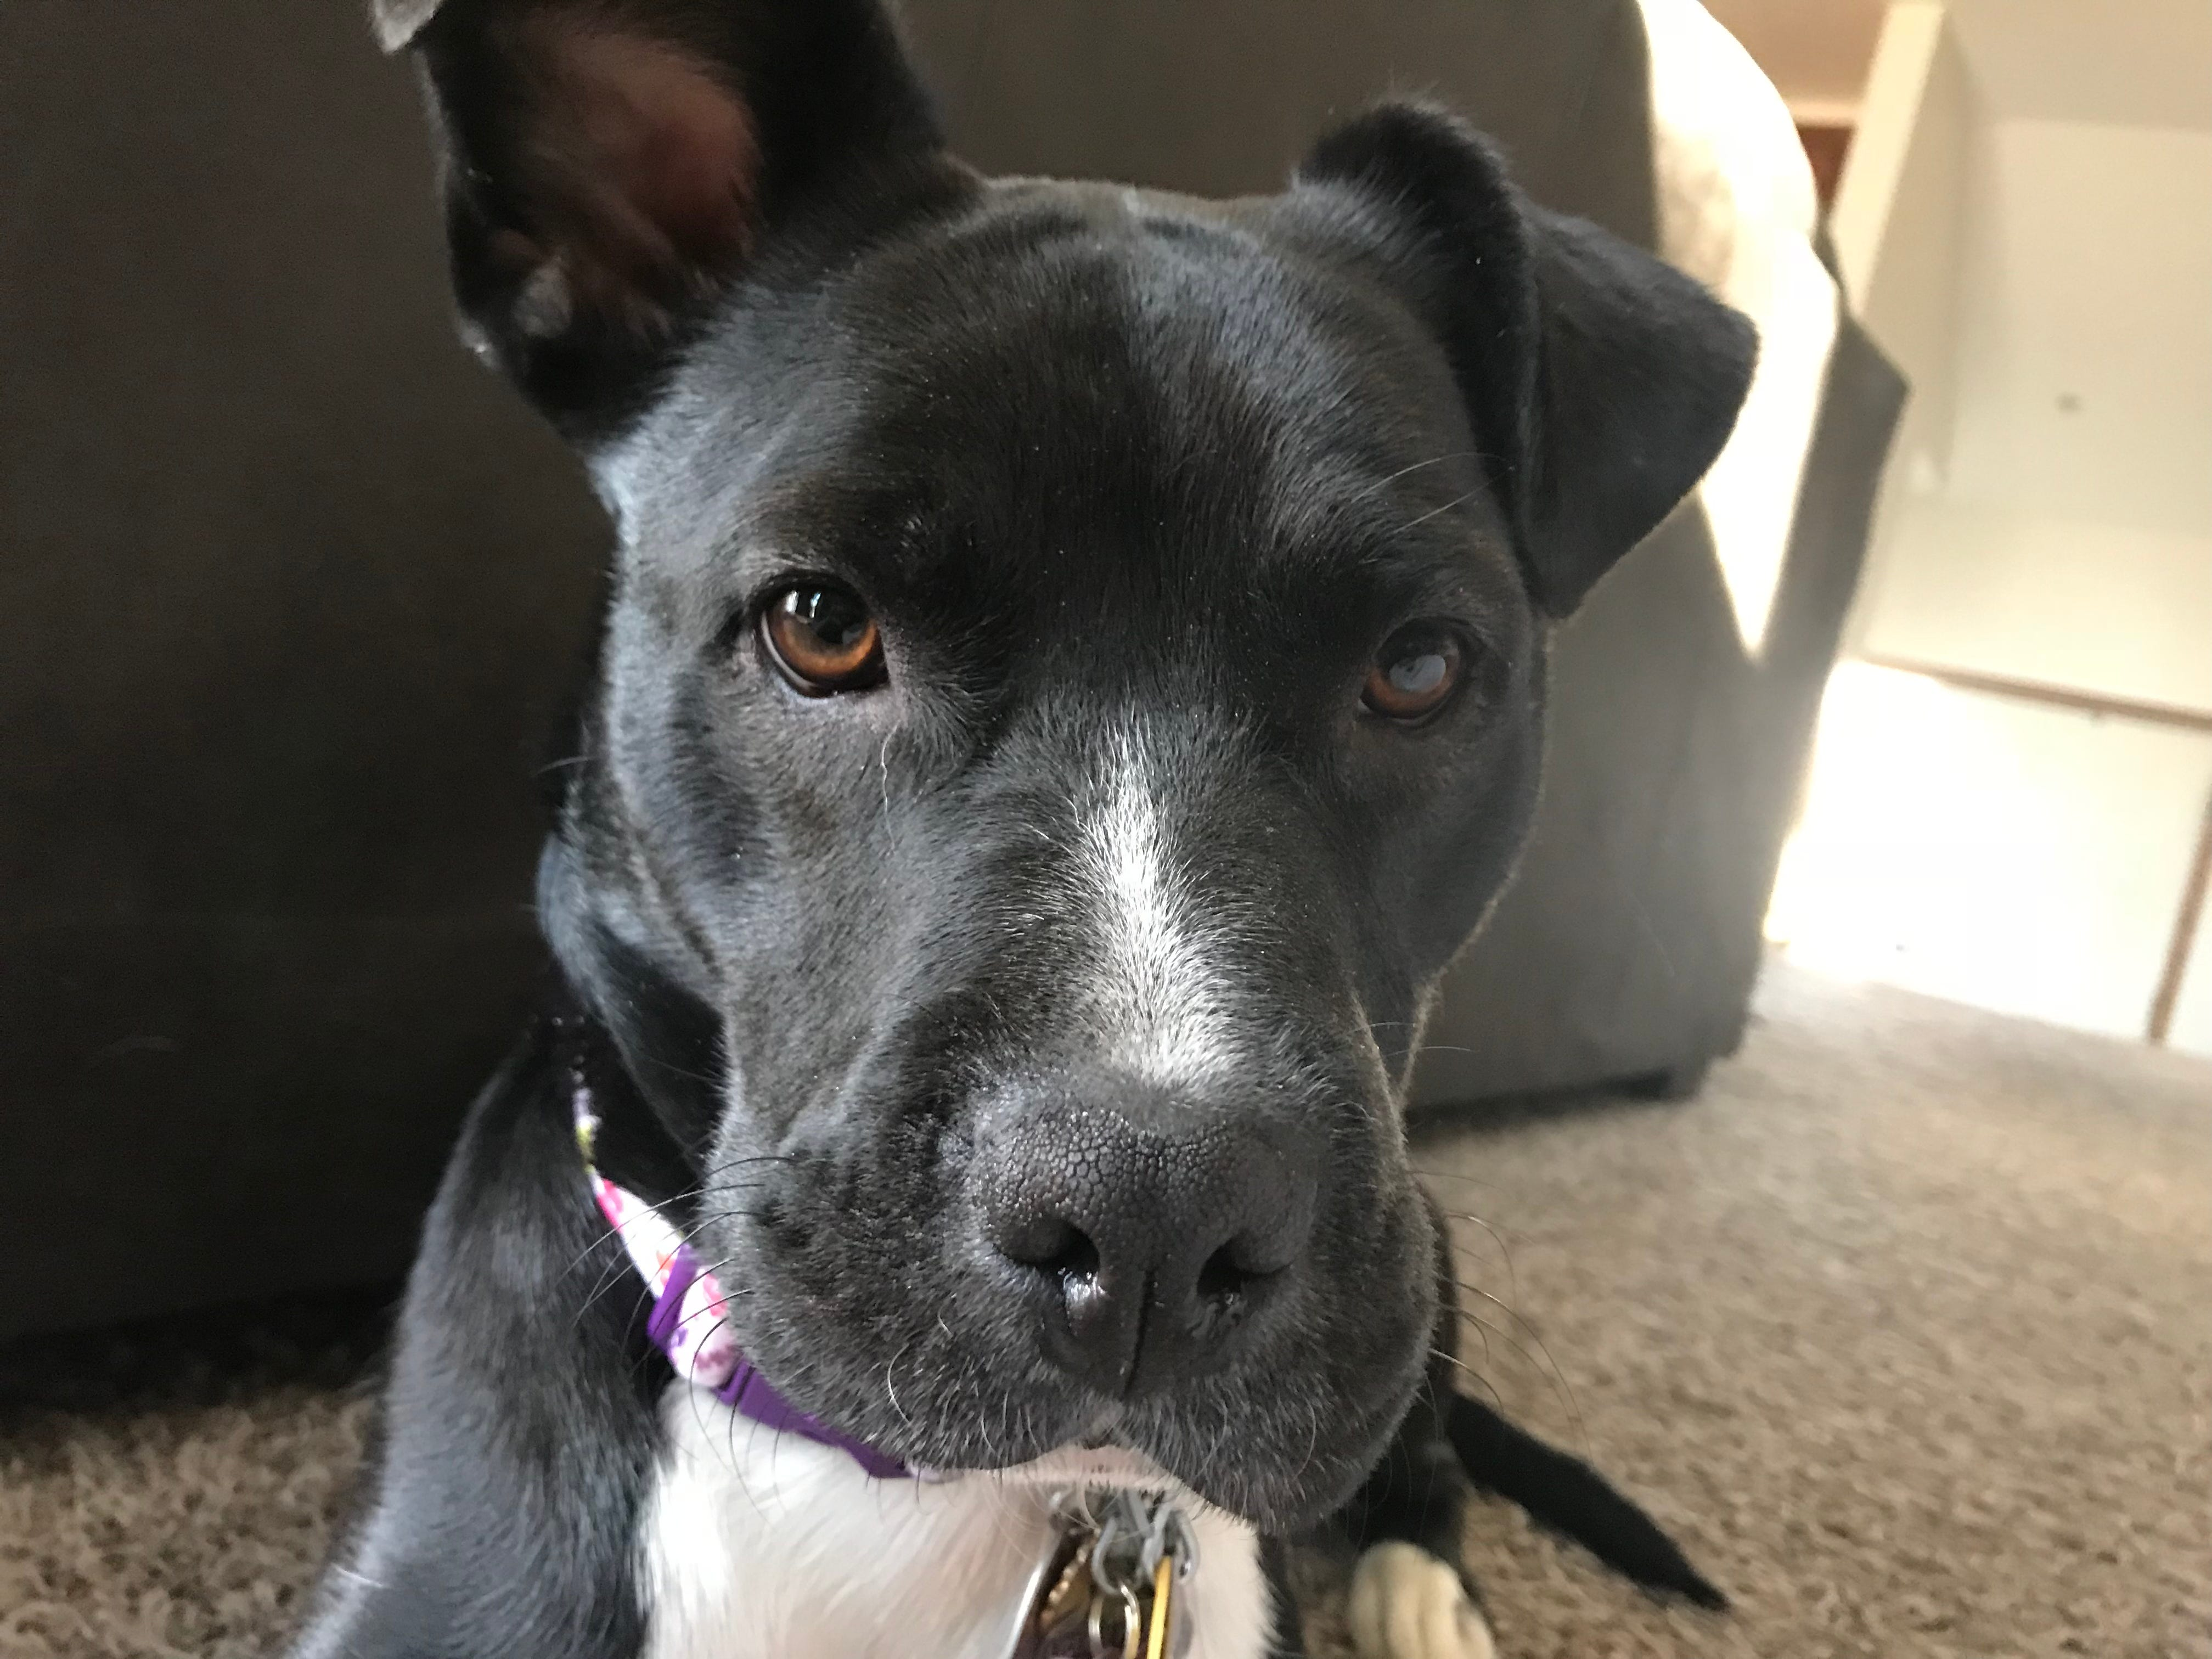 This is Lucy, a 2-year-old lab mix adopted from the Animal Rescue League of Iowa that belongs to entertainment reporter Matthew Leimkuehler.